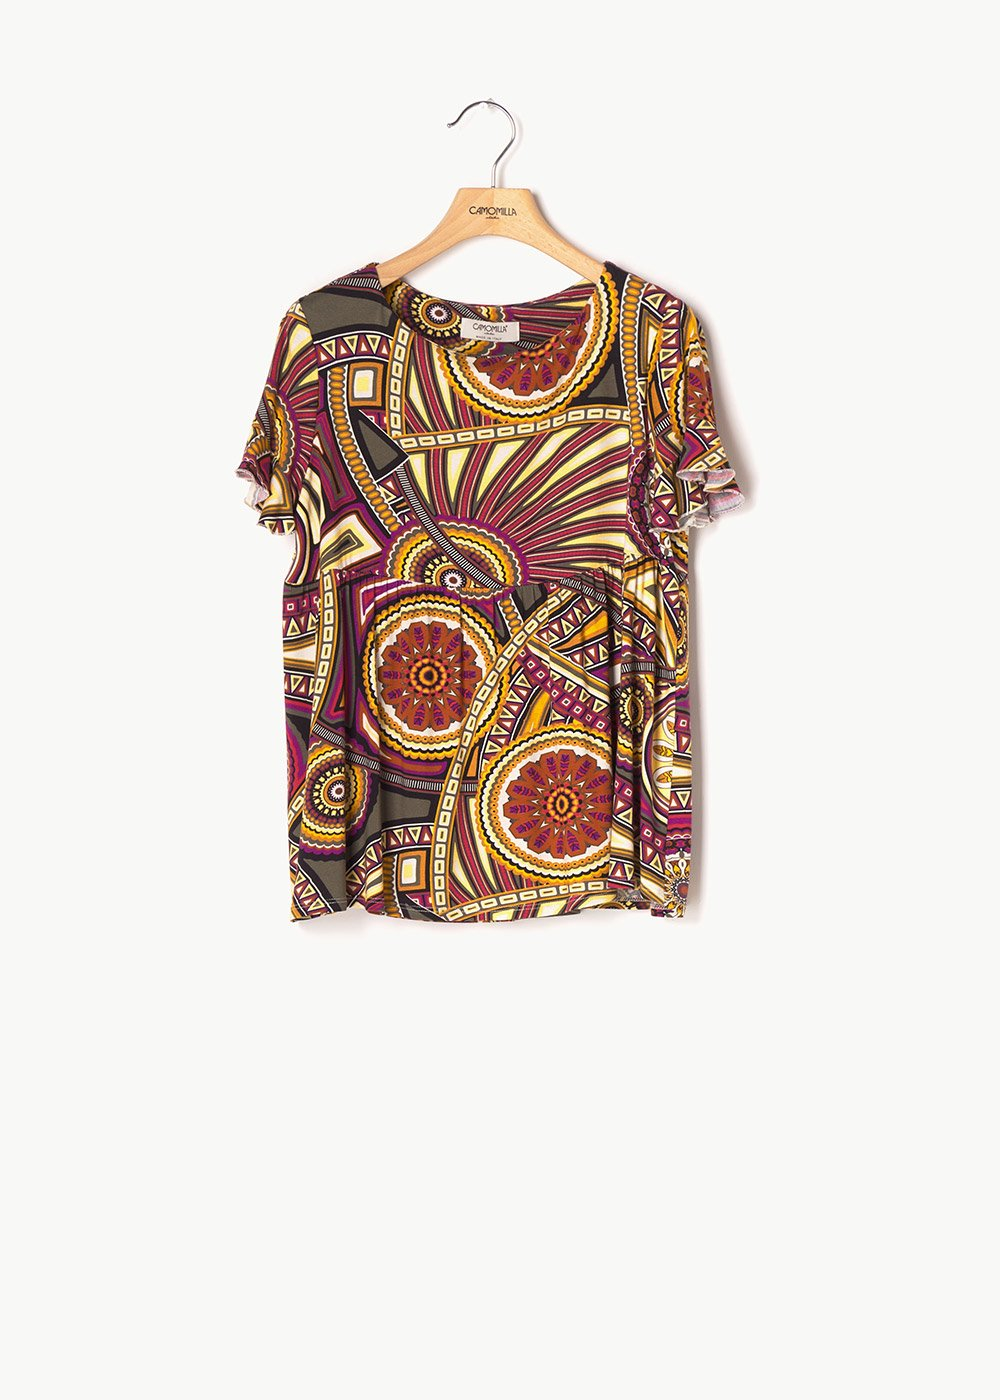 Soemy patterned T-shirt - Aragosta / Timo Fantasia - Woman